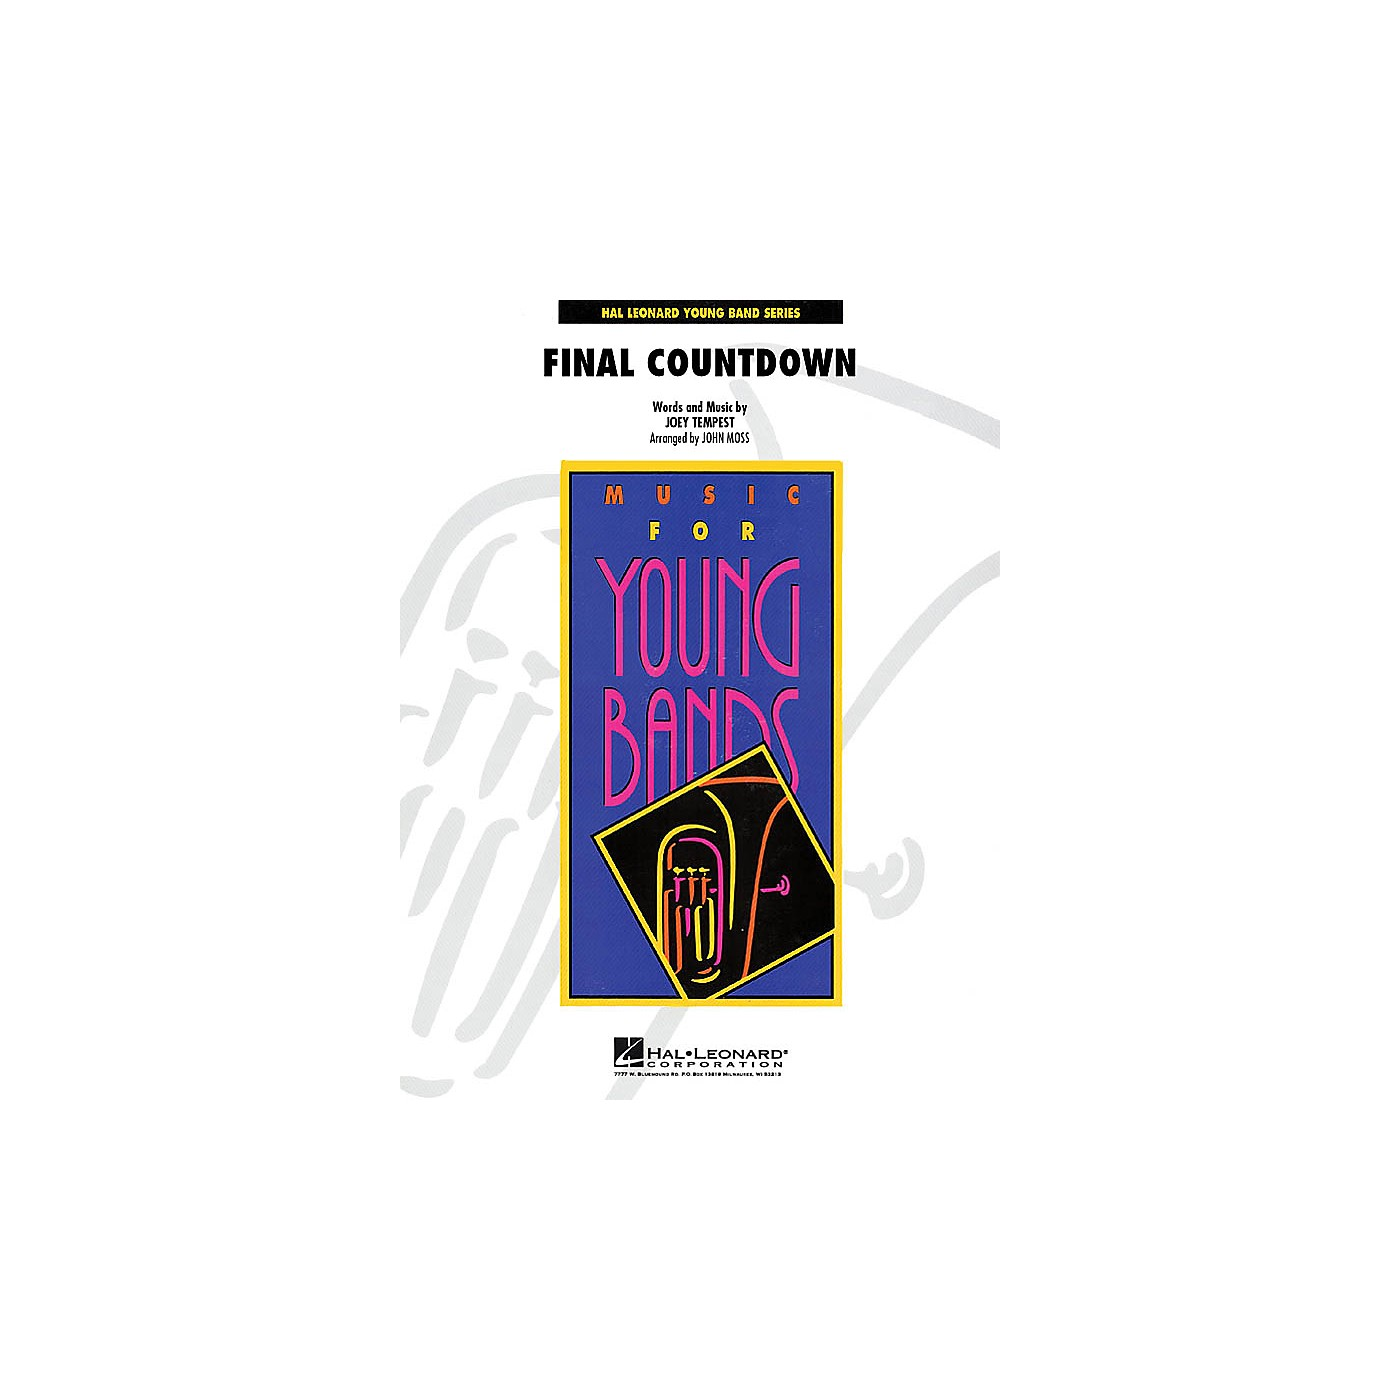 Hal Leonard Final Countdown - Young Concert Band Series Level 3 arranged by John Moss thumbnail